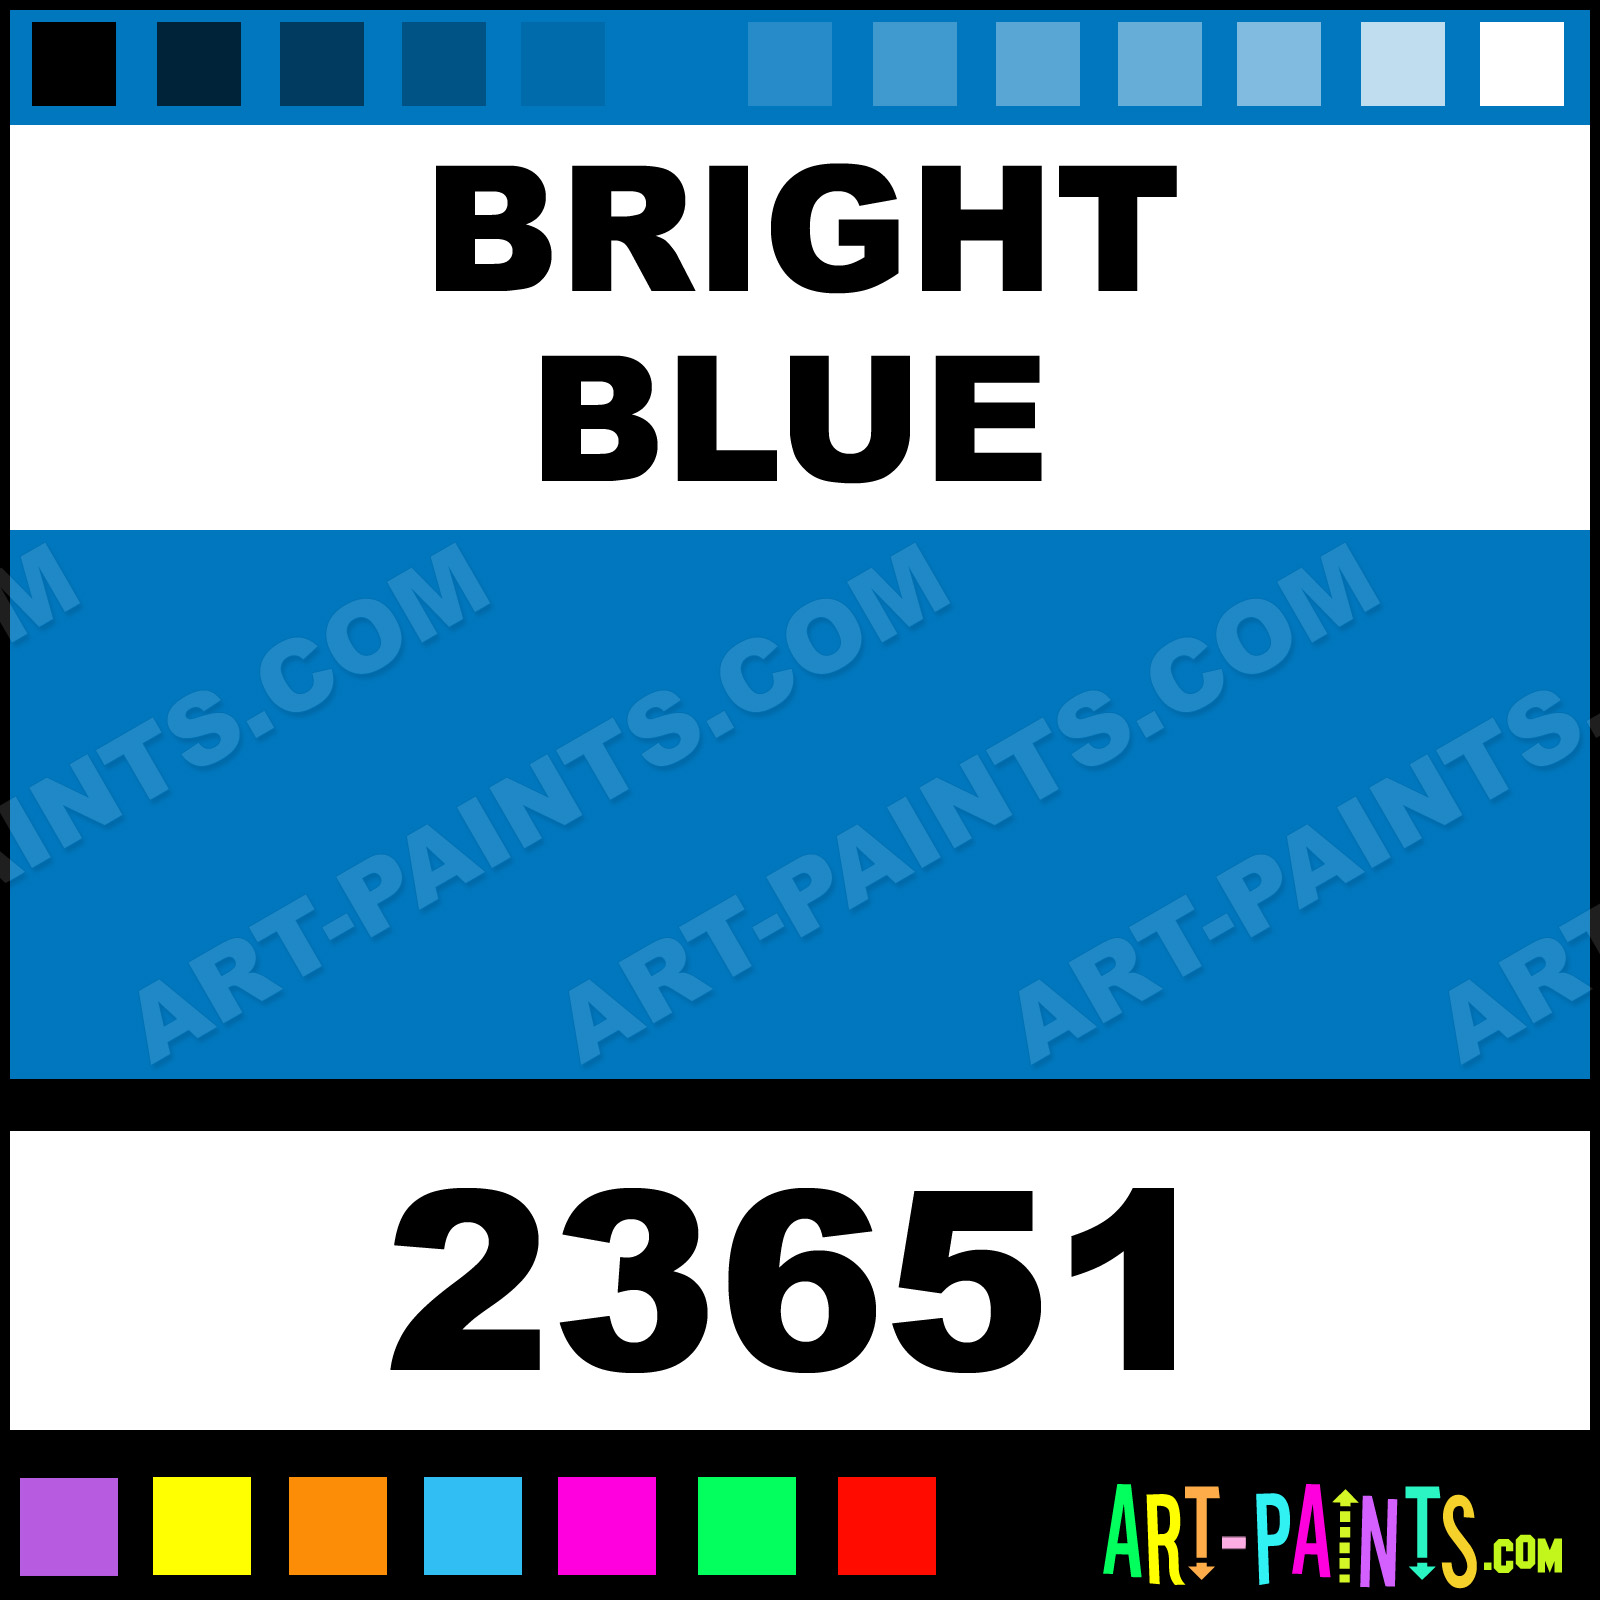 bright blue artist acrylic paints - 23651 - bright blue paint